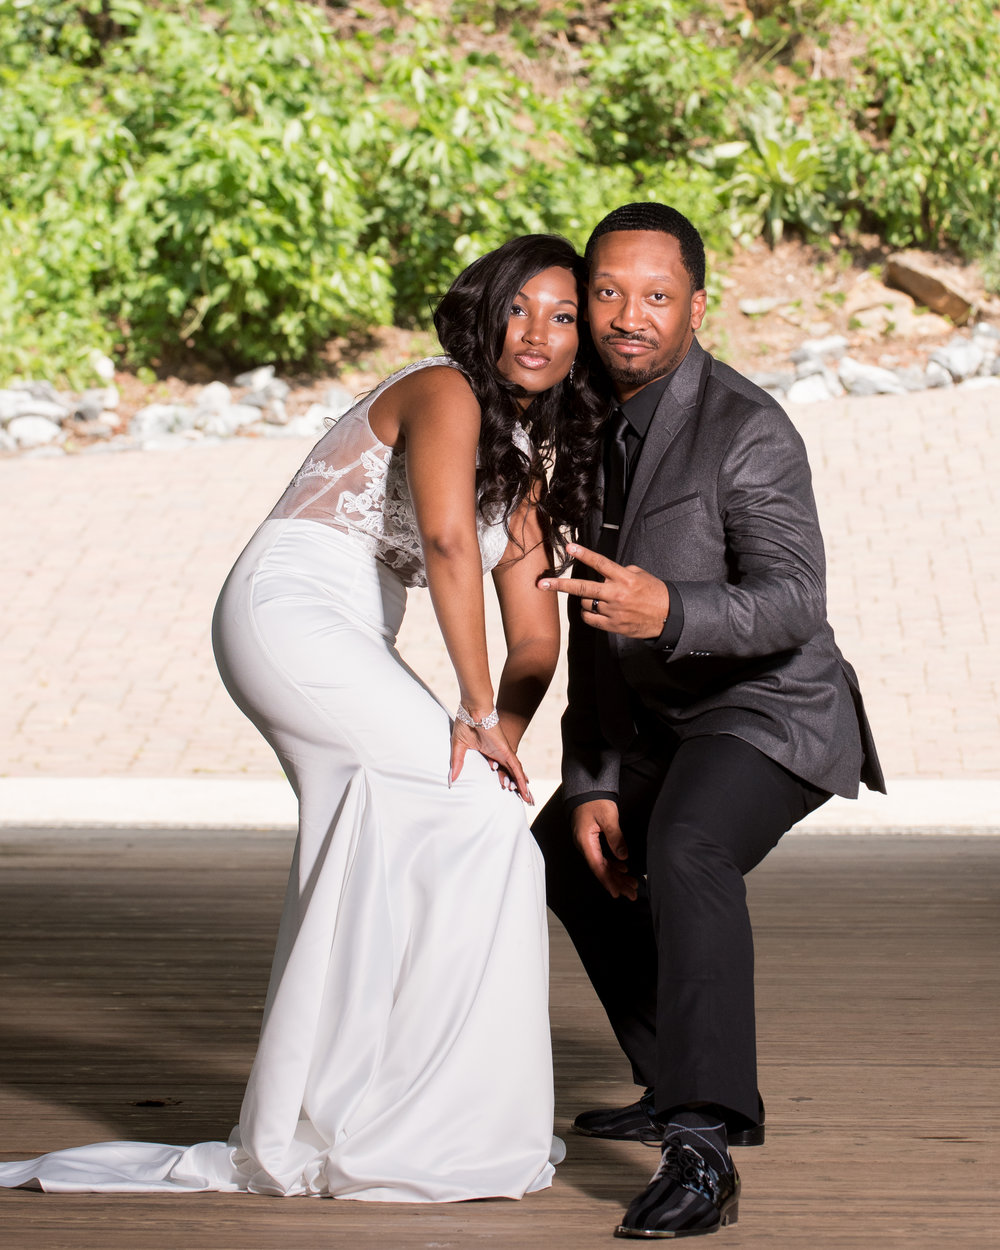 Toya+Mike_Private-Leighton DaCosta Photographer-untitled-9592-2.jpg